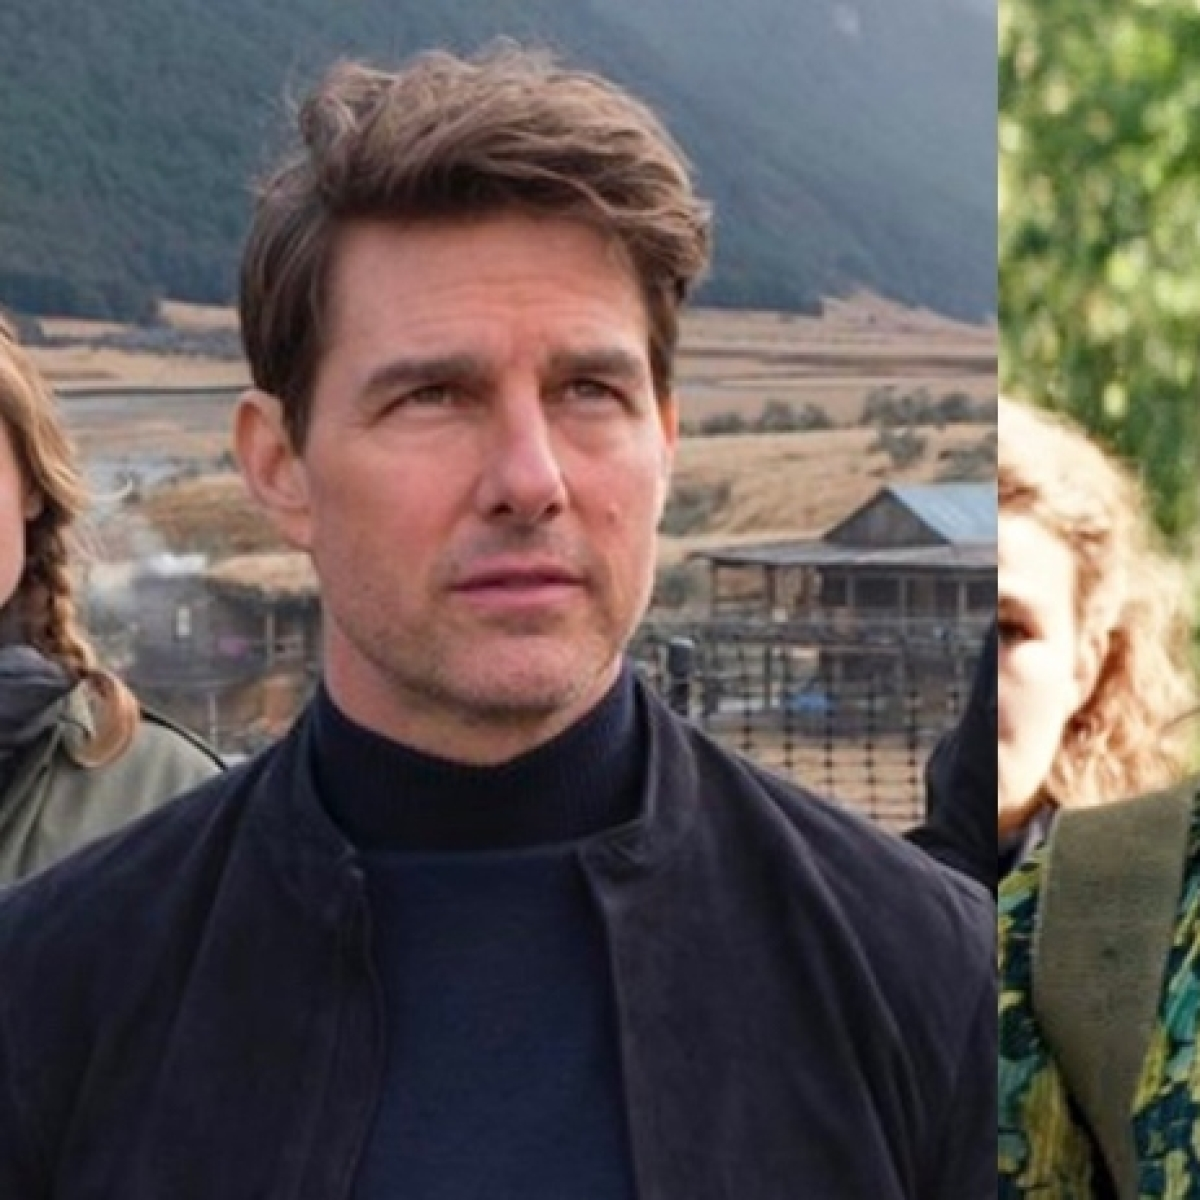 'Mission: Impossible 7', 'A Quiet Place 2' to stream on Paramount+ 45 days after its release in theatres